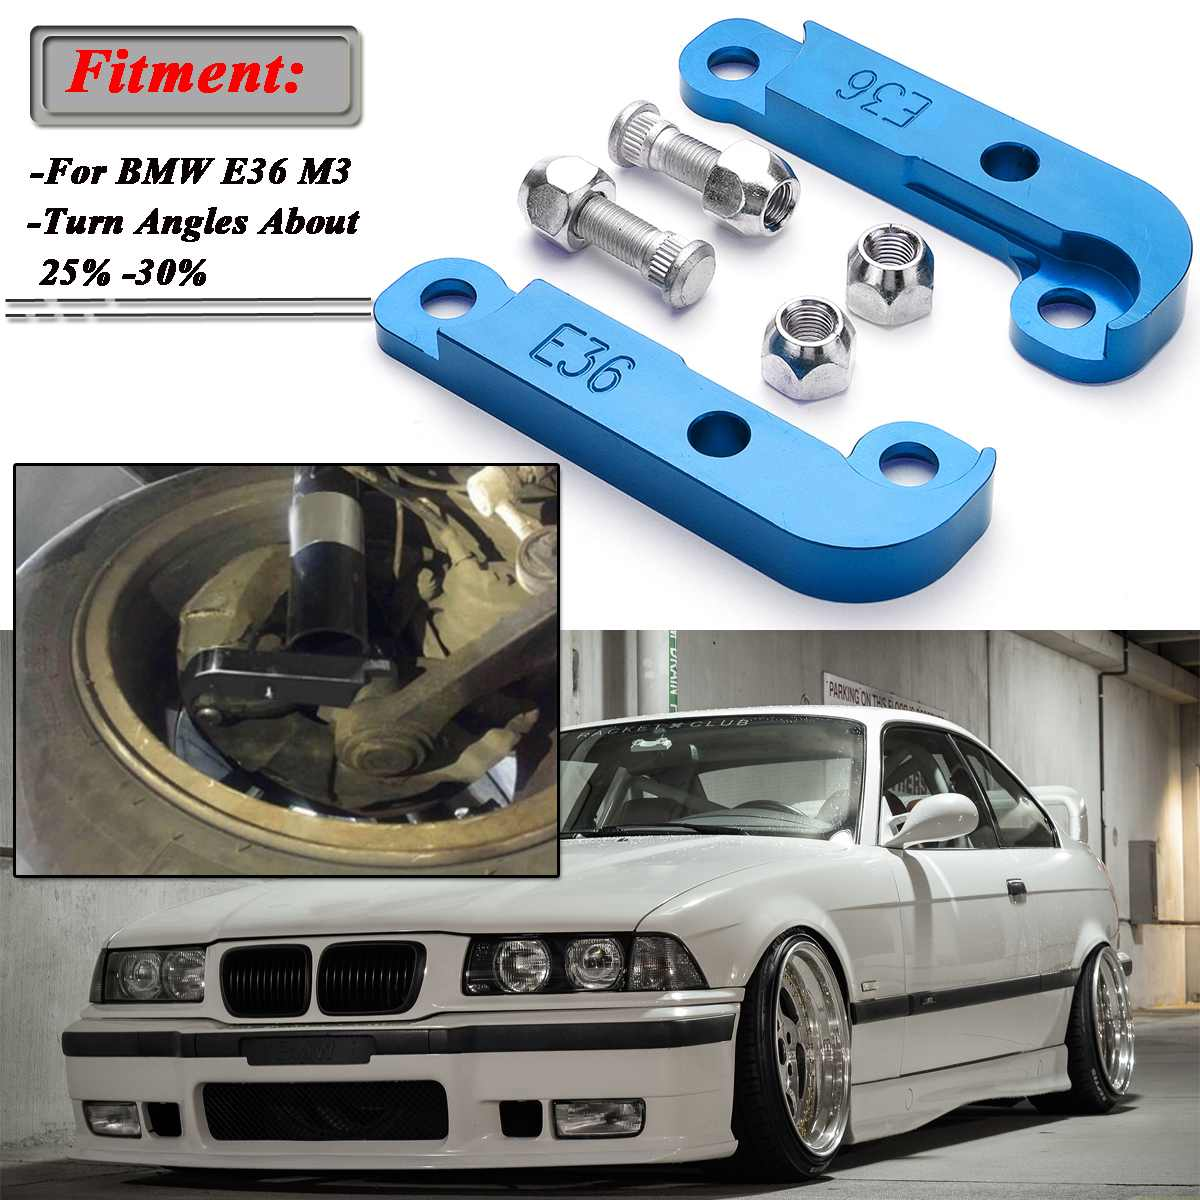 2x Blue Adapter Increasing Turn Angles About 25%-30% Drift Lock Kit For BMW E36 M3 Tuning Drift Power Adapters & Mounting